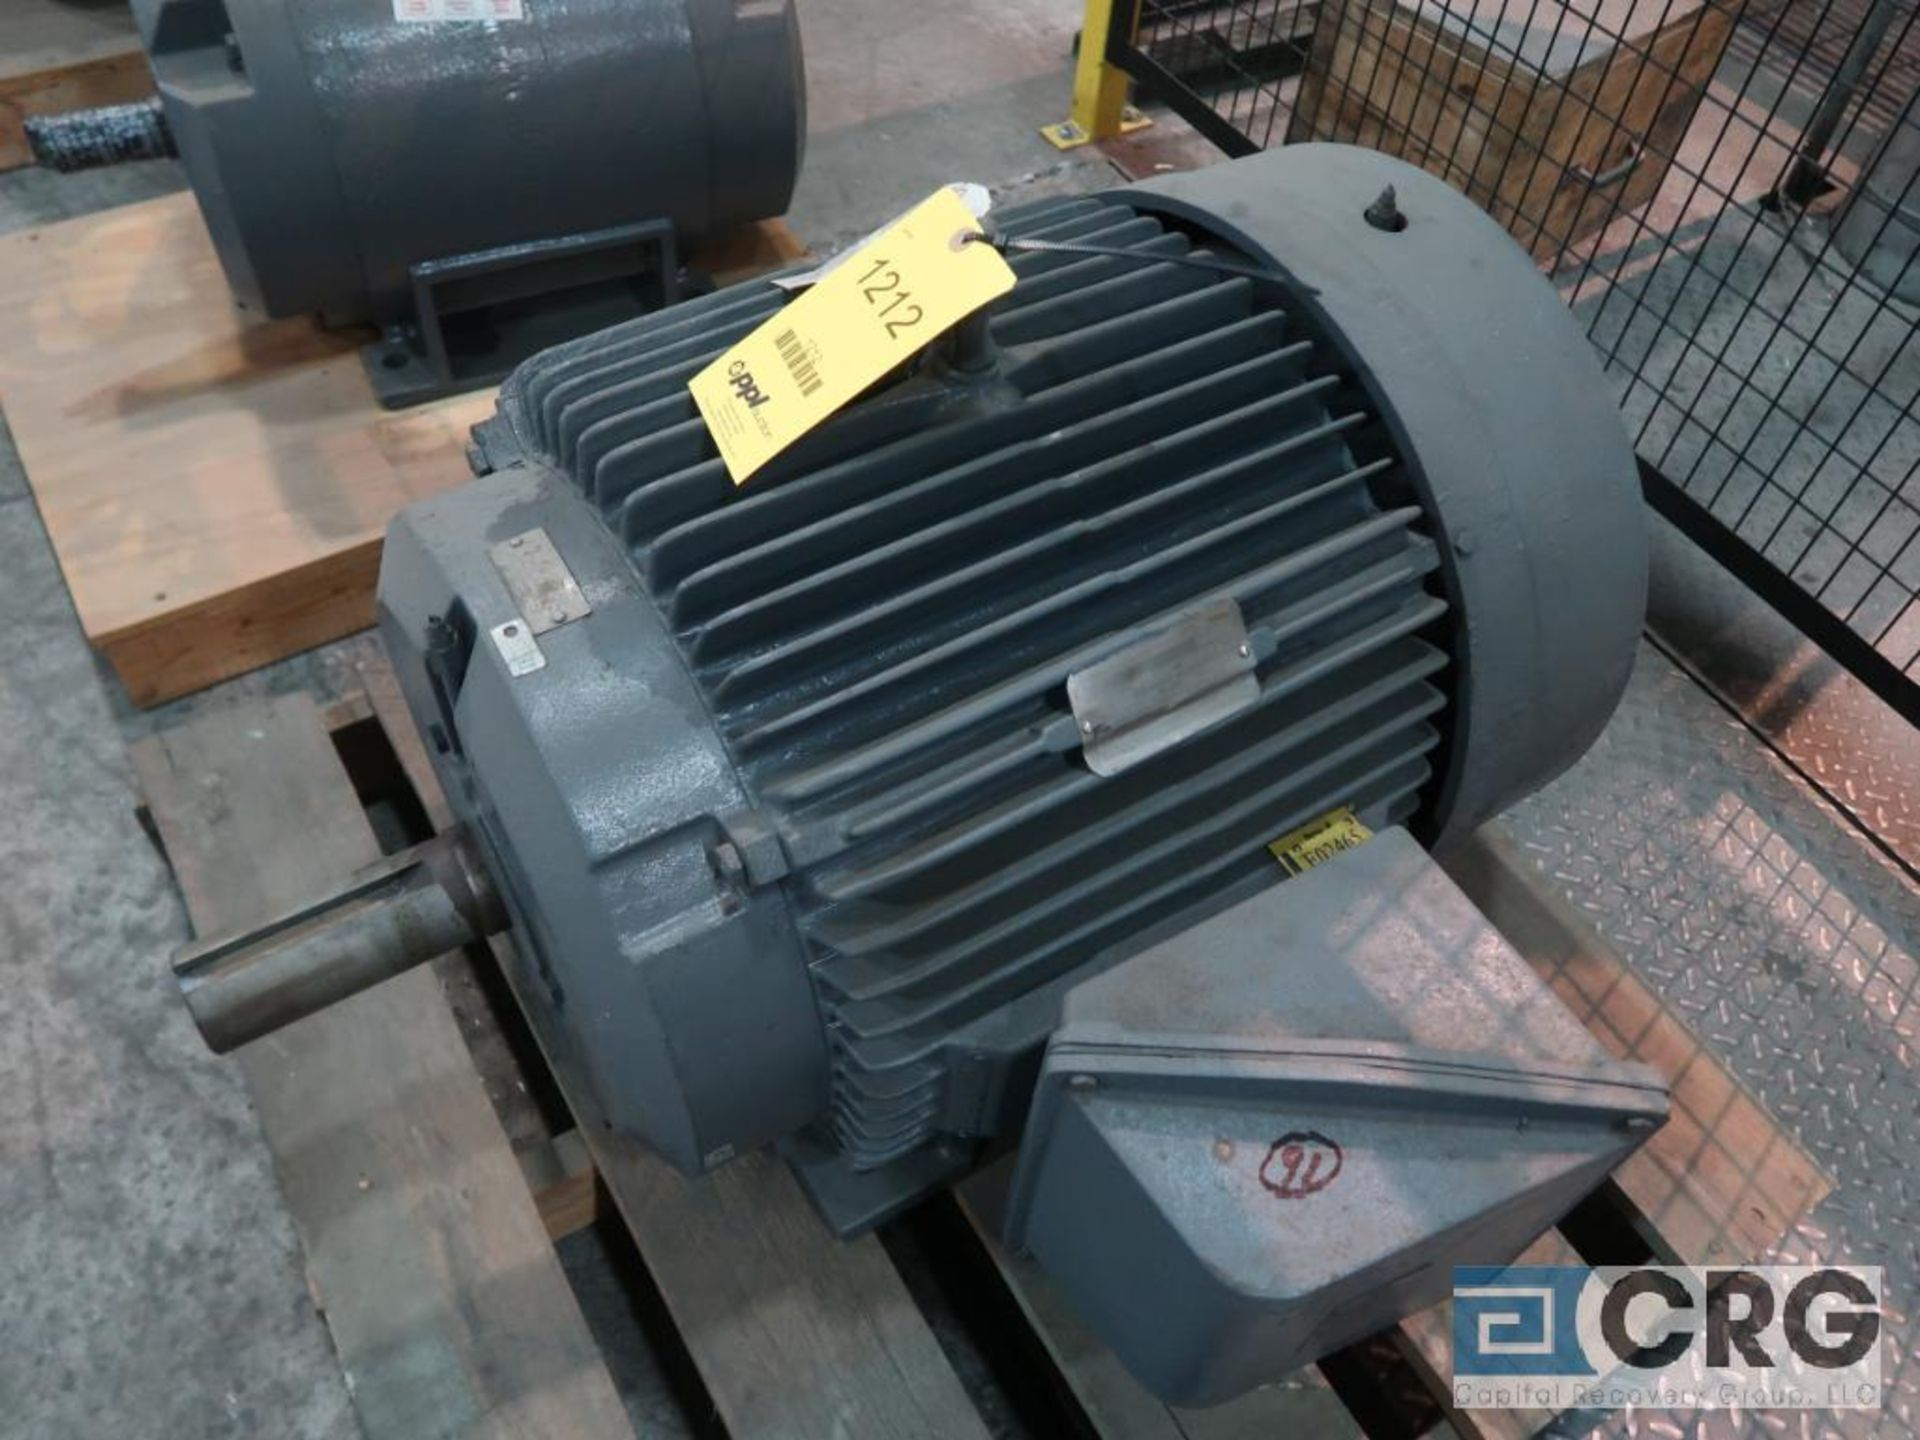 Reliance electric motor, 60 HP, 1,775 RPMs, 460 volt, 3 ph., 364T frame (Finish Building)